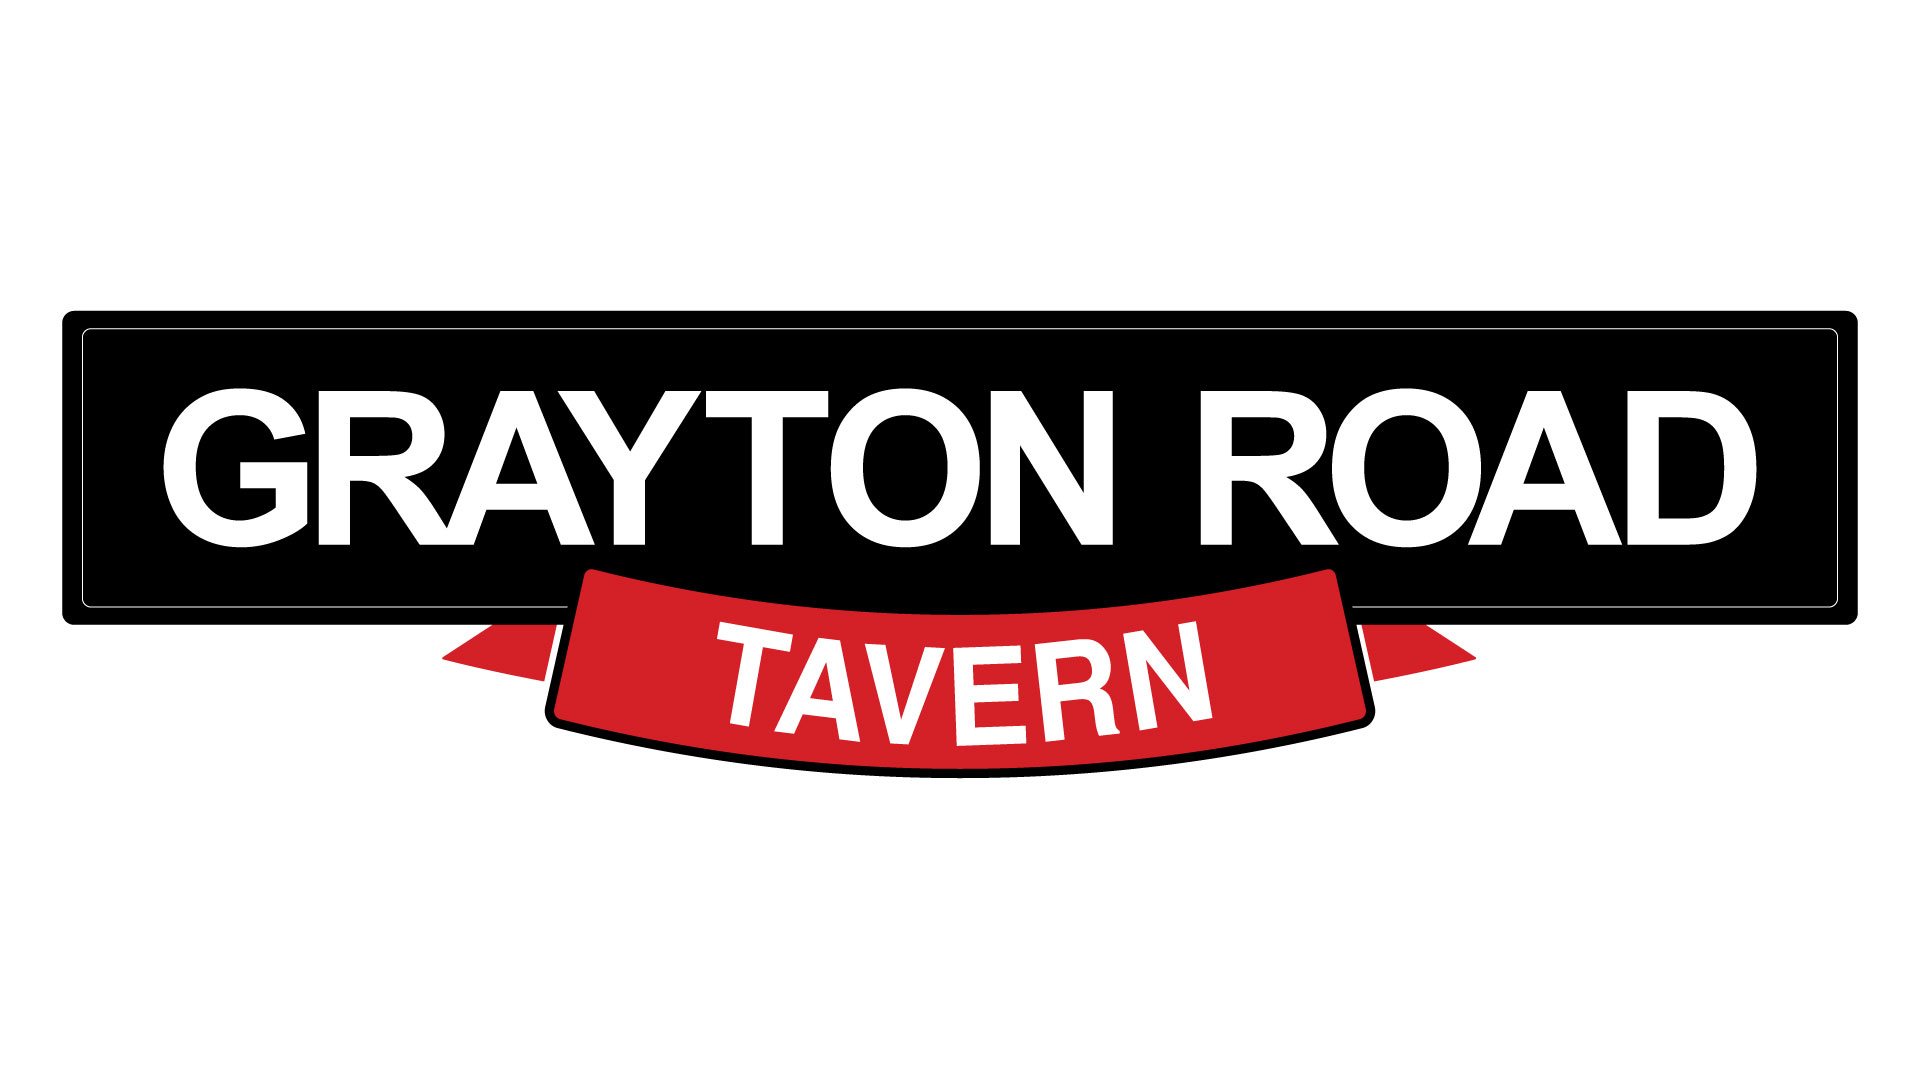 Grayton Road Tavern Web Design